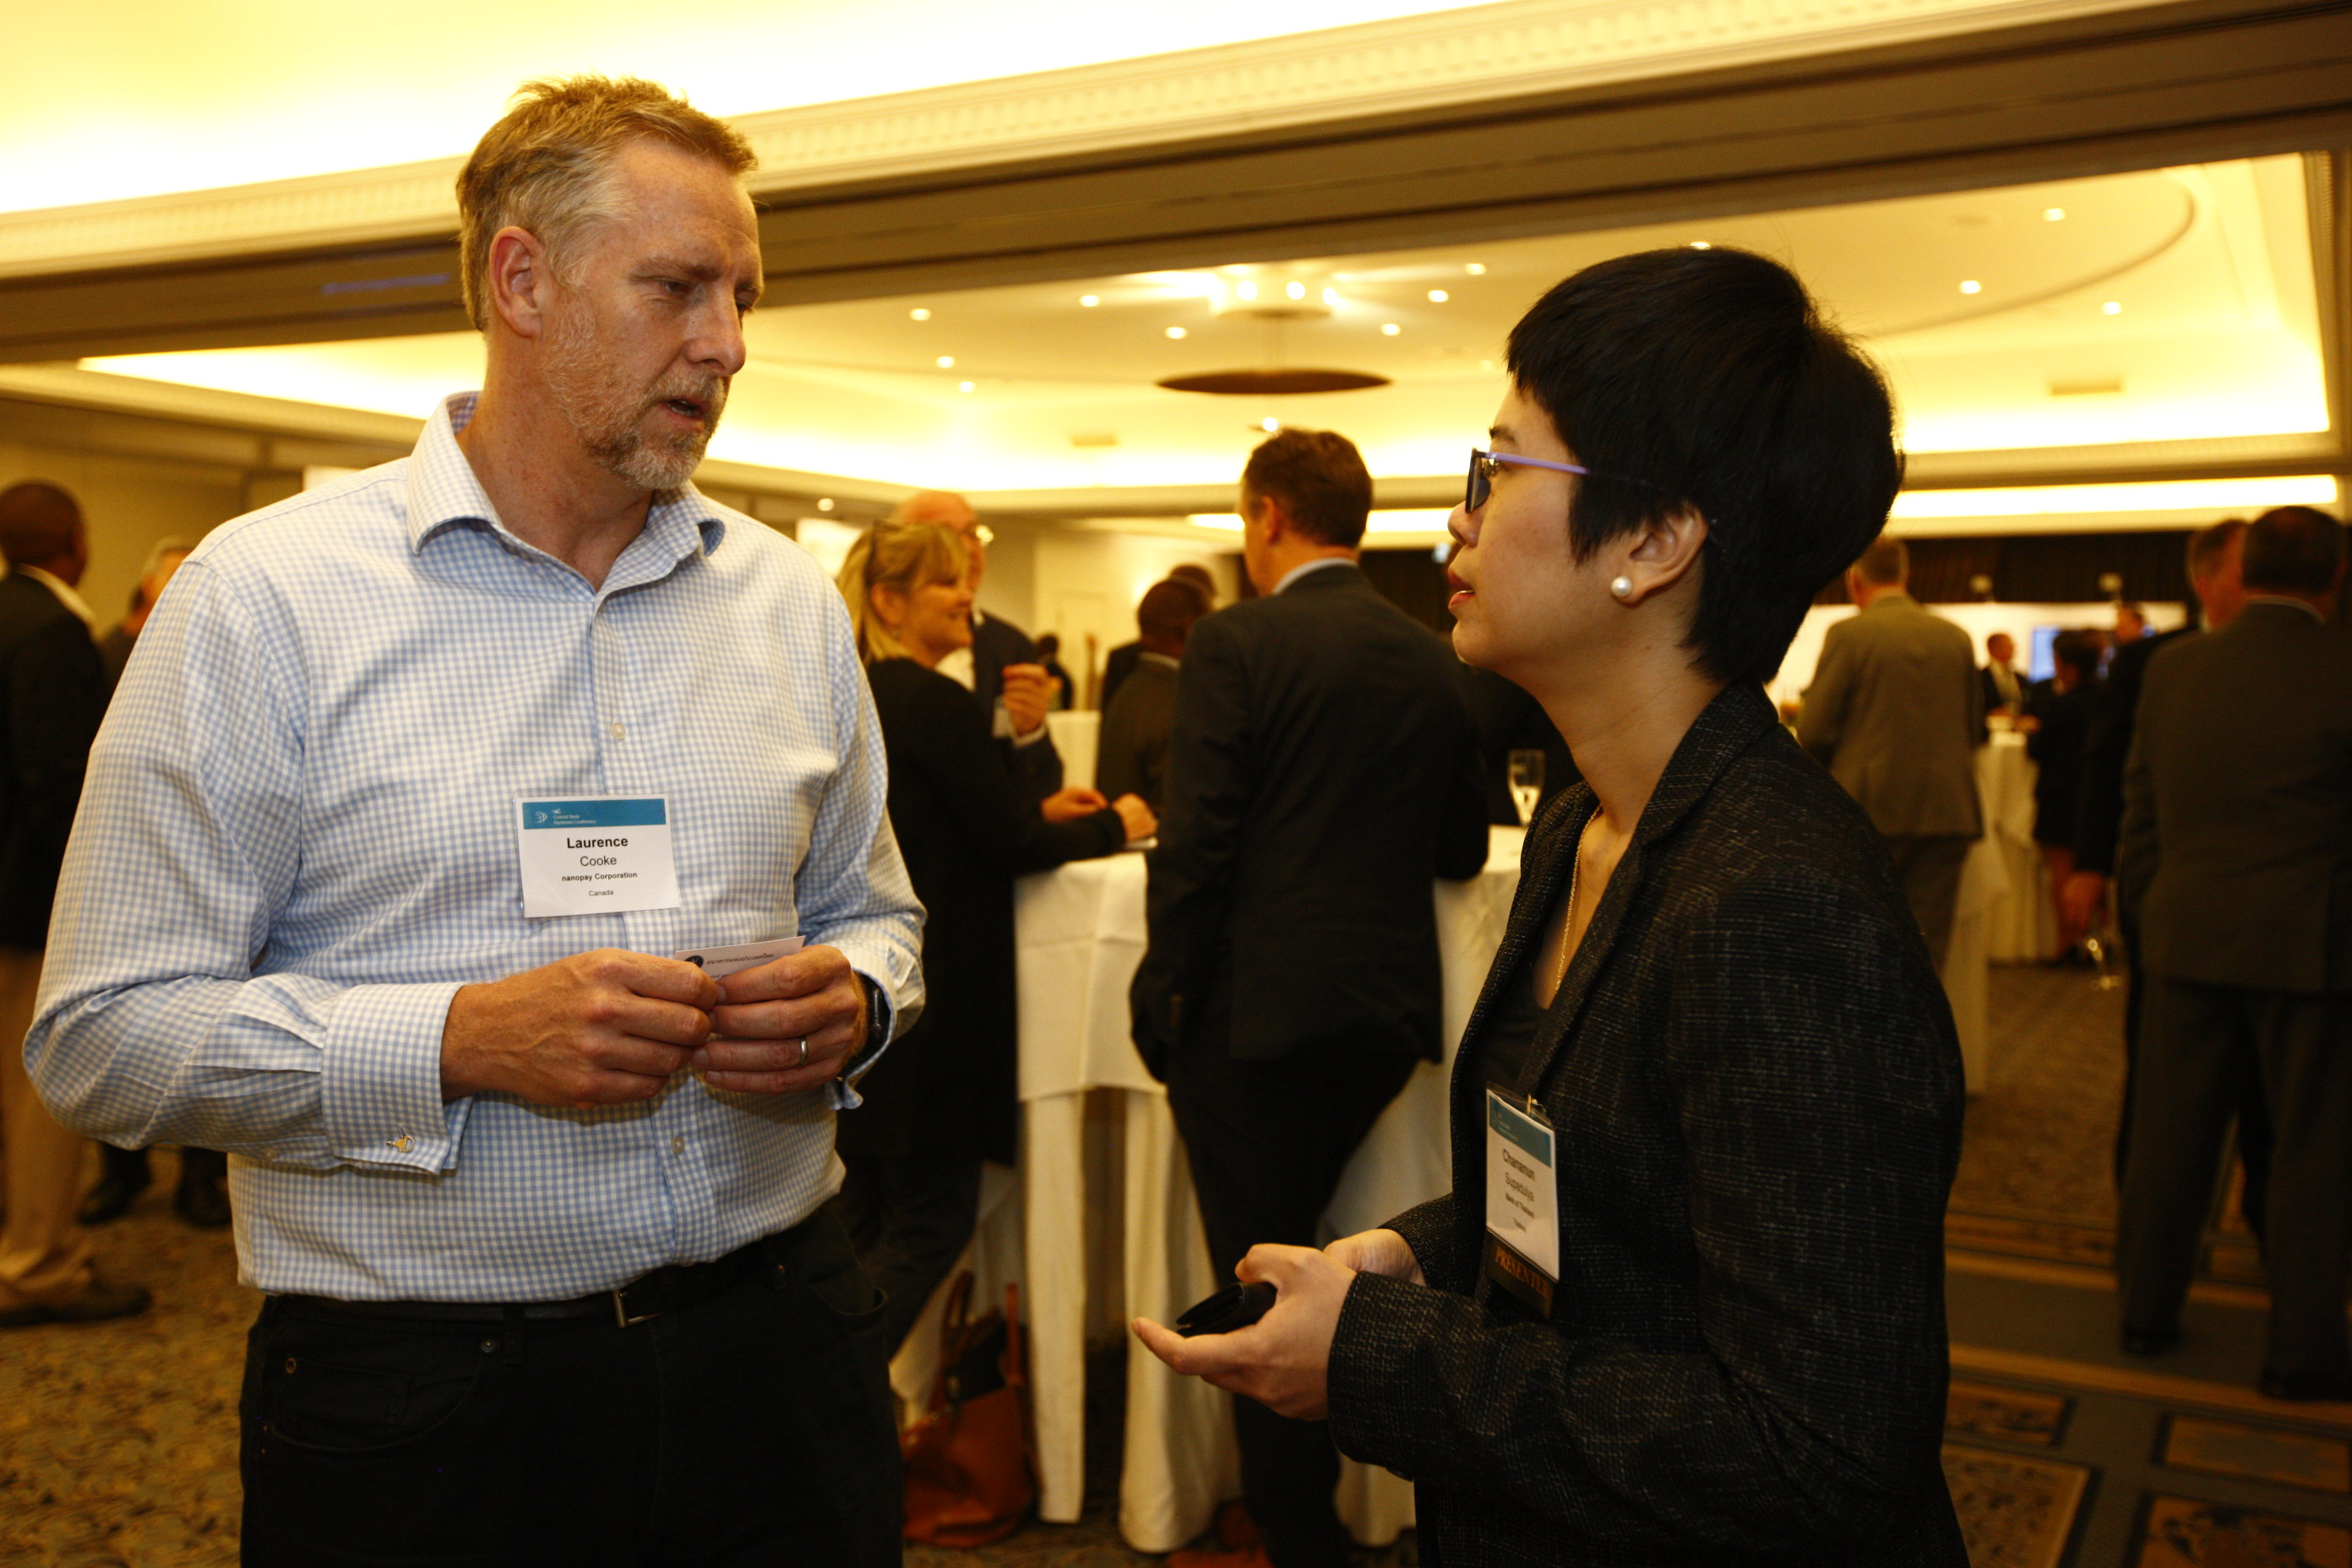 Laurence Cooke, nanopay Founder and CEO (left), engaging with Chananun Supadulya, Deputy Director at the Office of Corporate Strategy, Bank of Thailand (right)